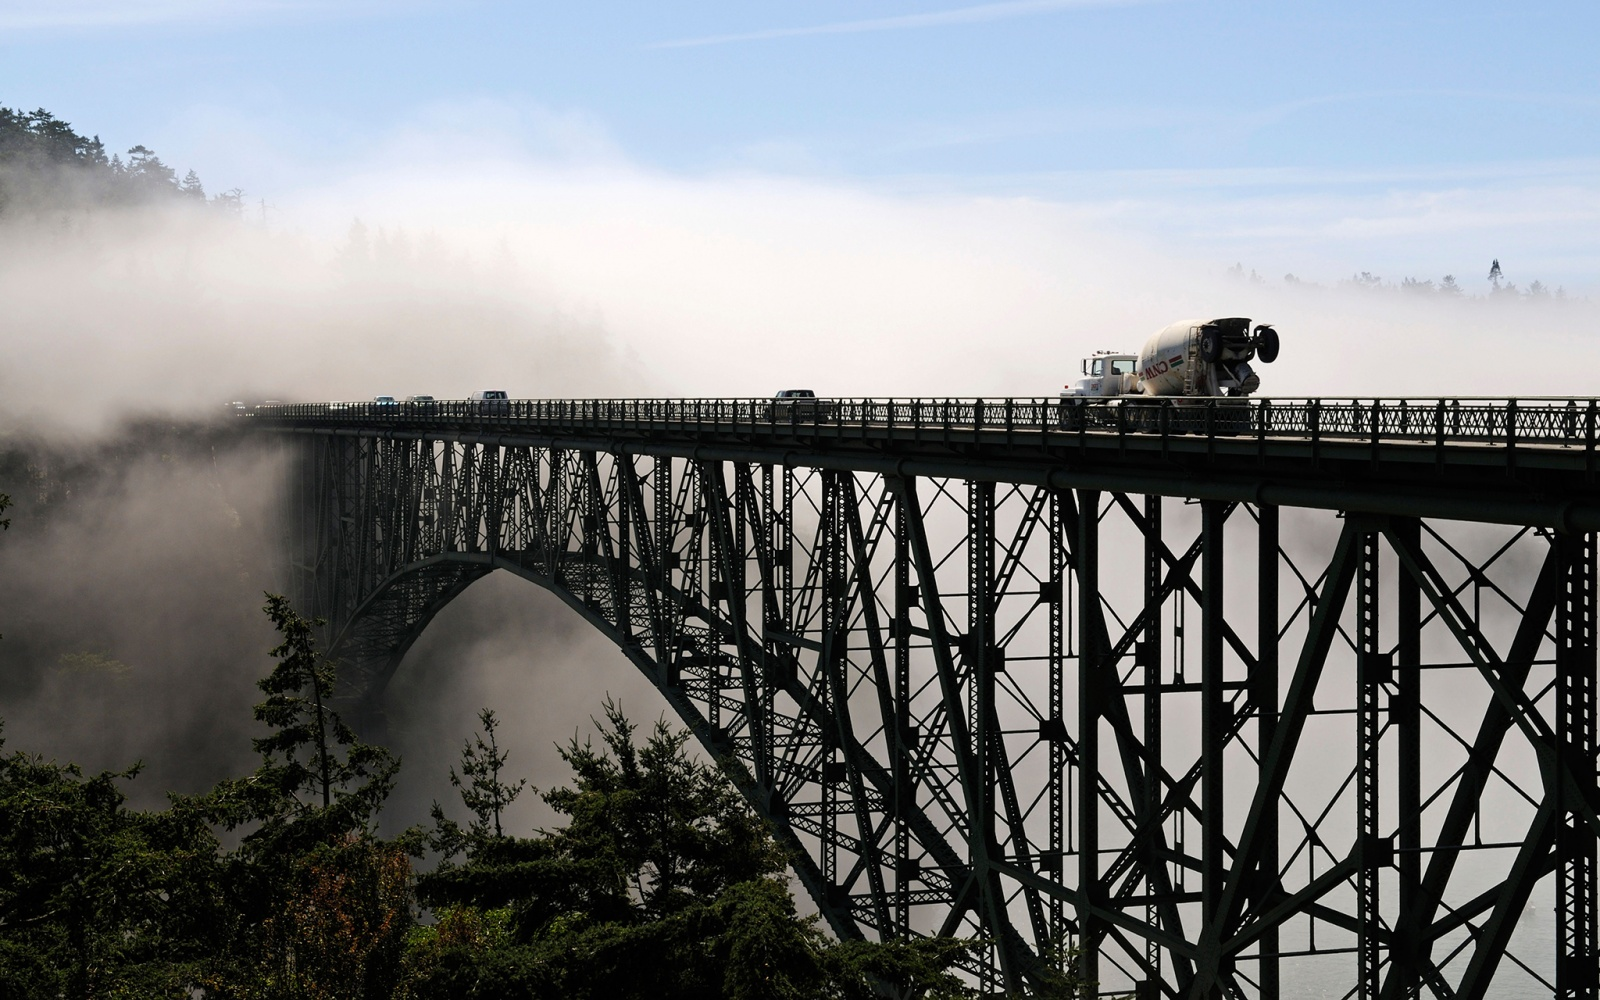 Deception Pass Bridge, Washington